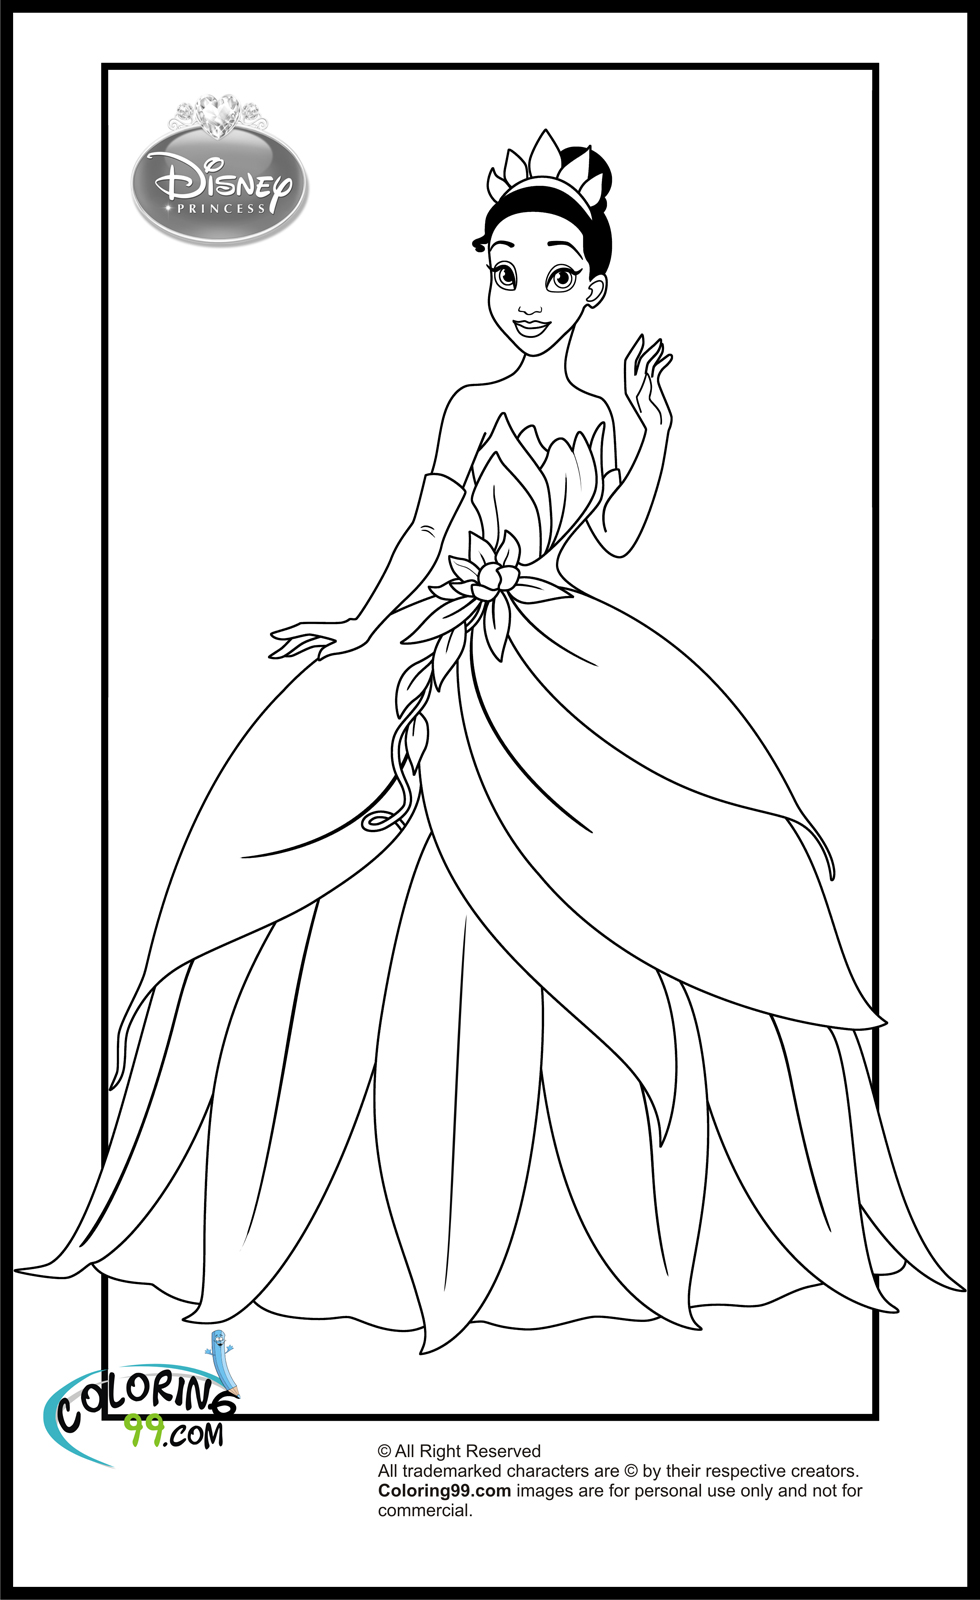 Disney Princess Coloring Pages | Minister Coloring | colouring pages disney princesses printable